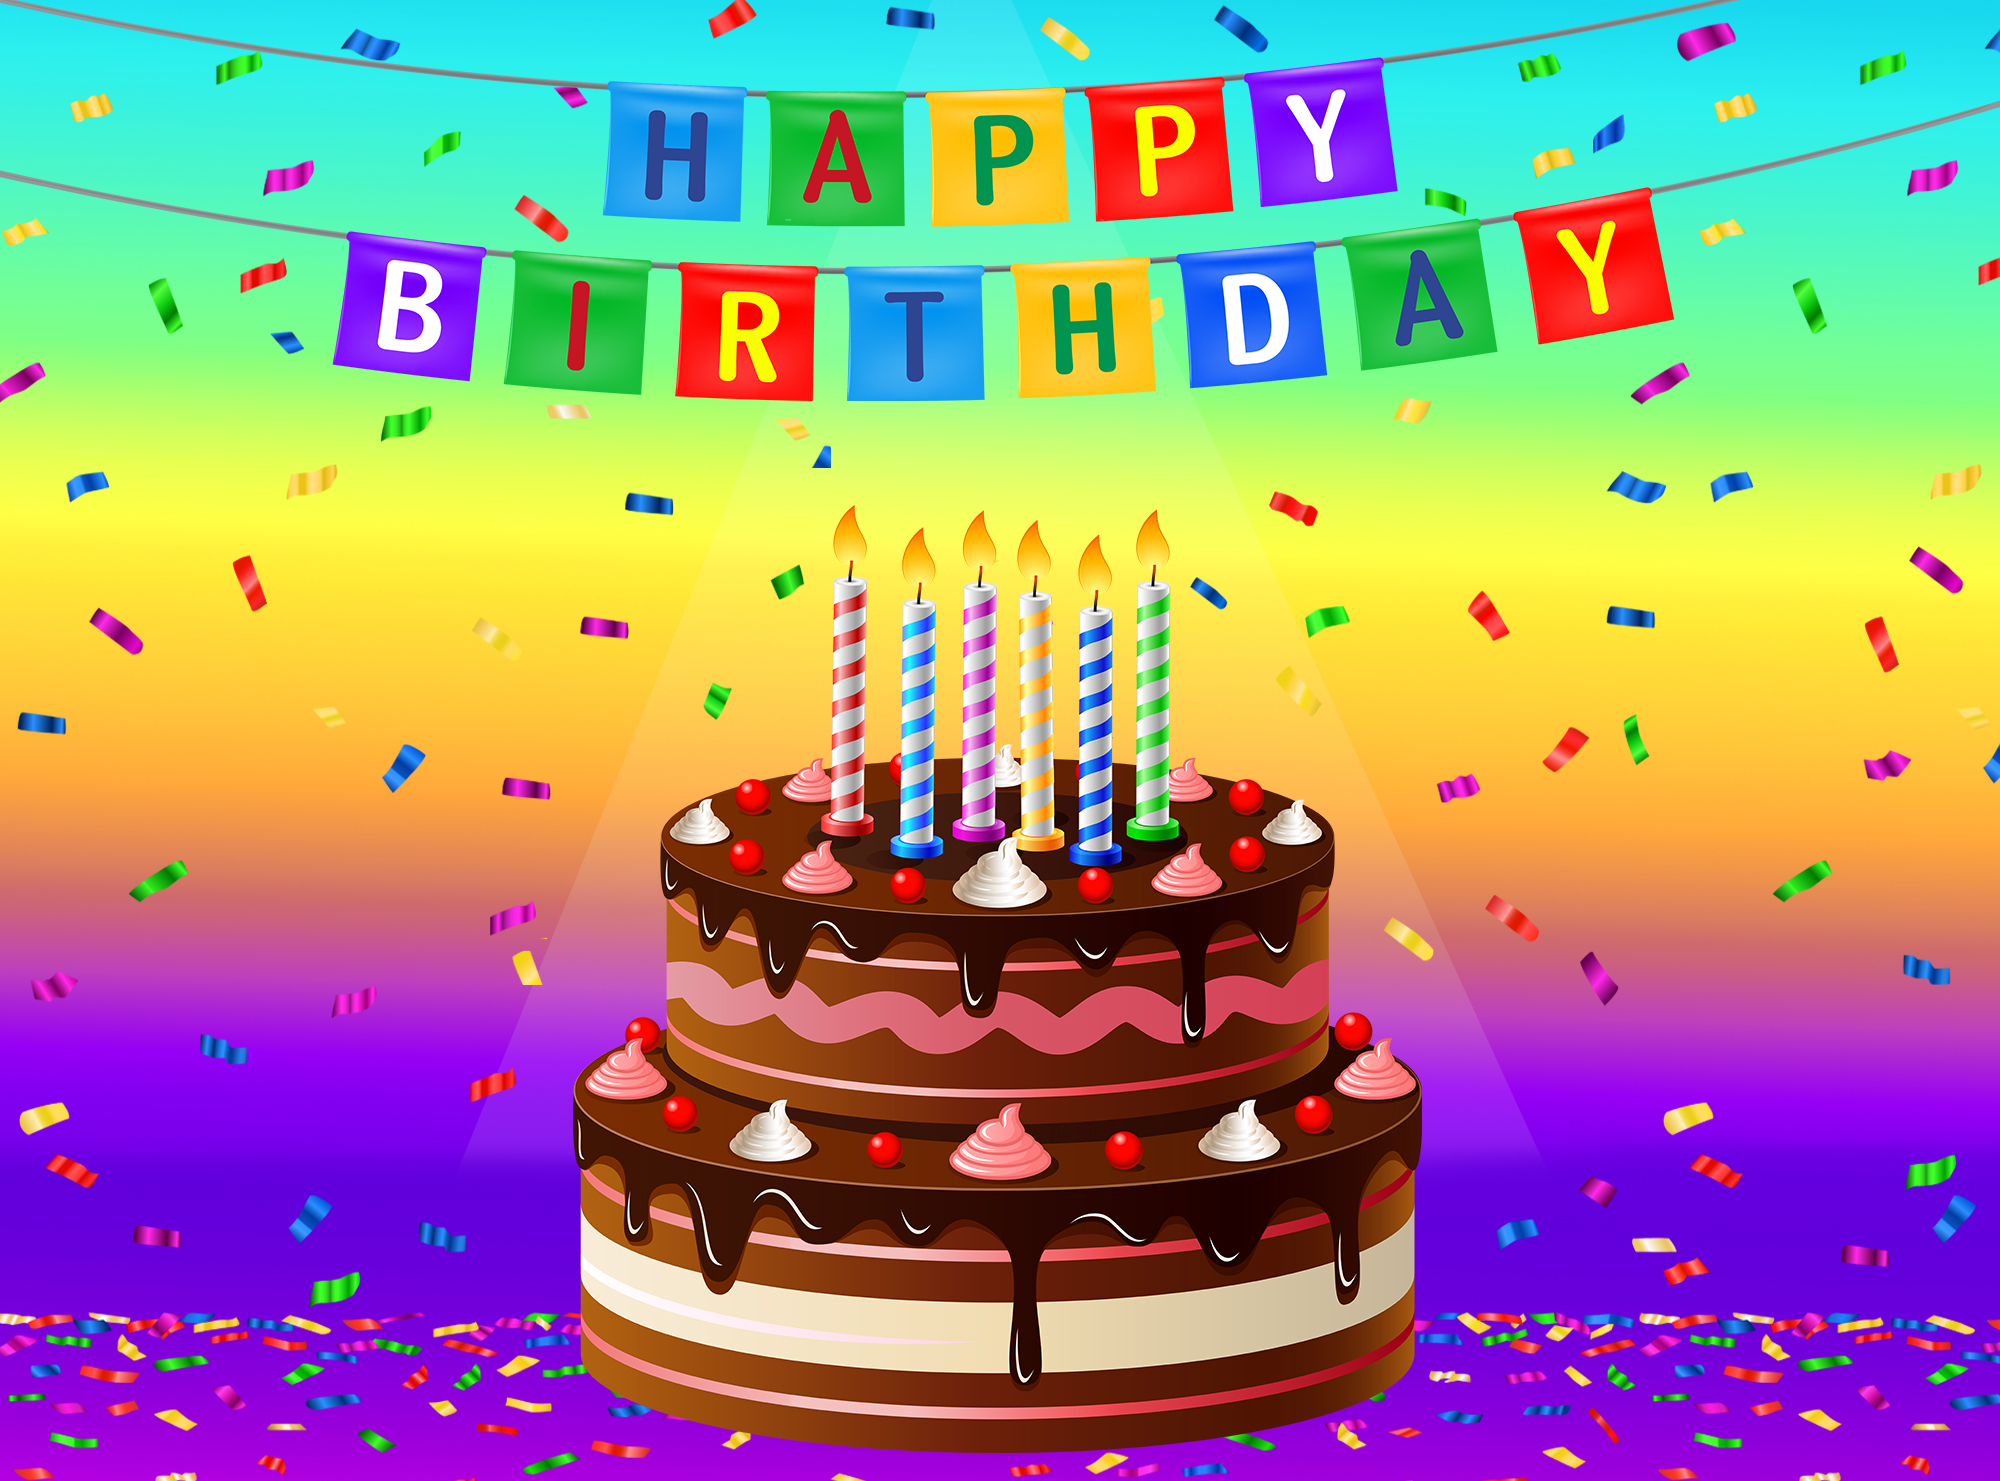 Free clipart happy birthday greetings. Greeting card with cake